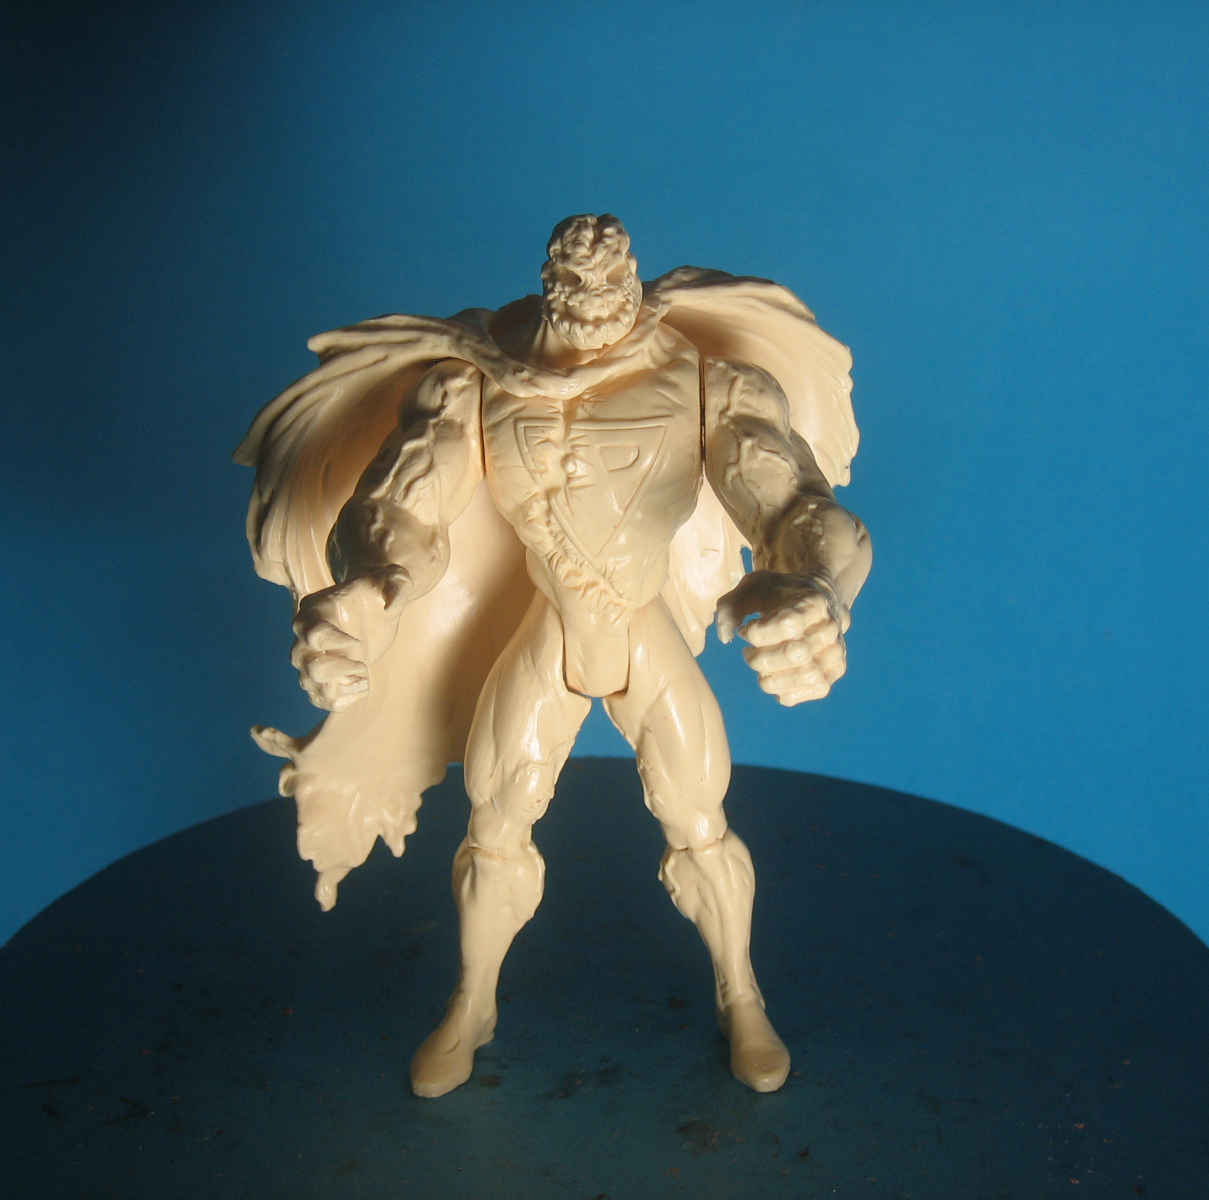 Prime Evil from the Ultraverse for Galoob - unpainted hard copy - never produced